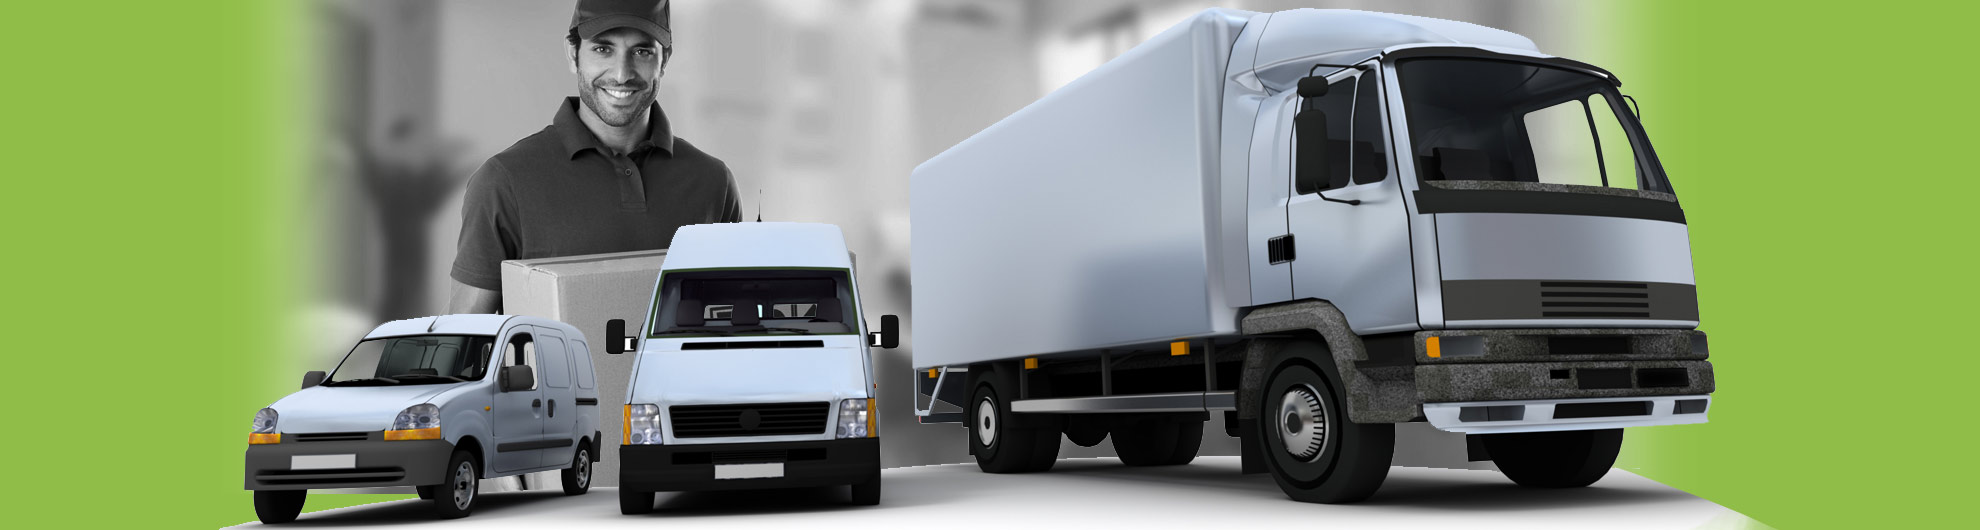 Mertzig  International Movers - Shipping Companies